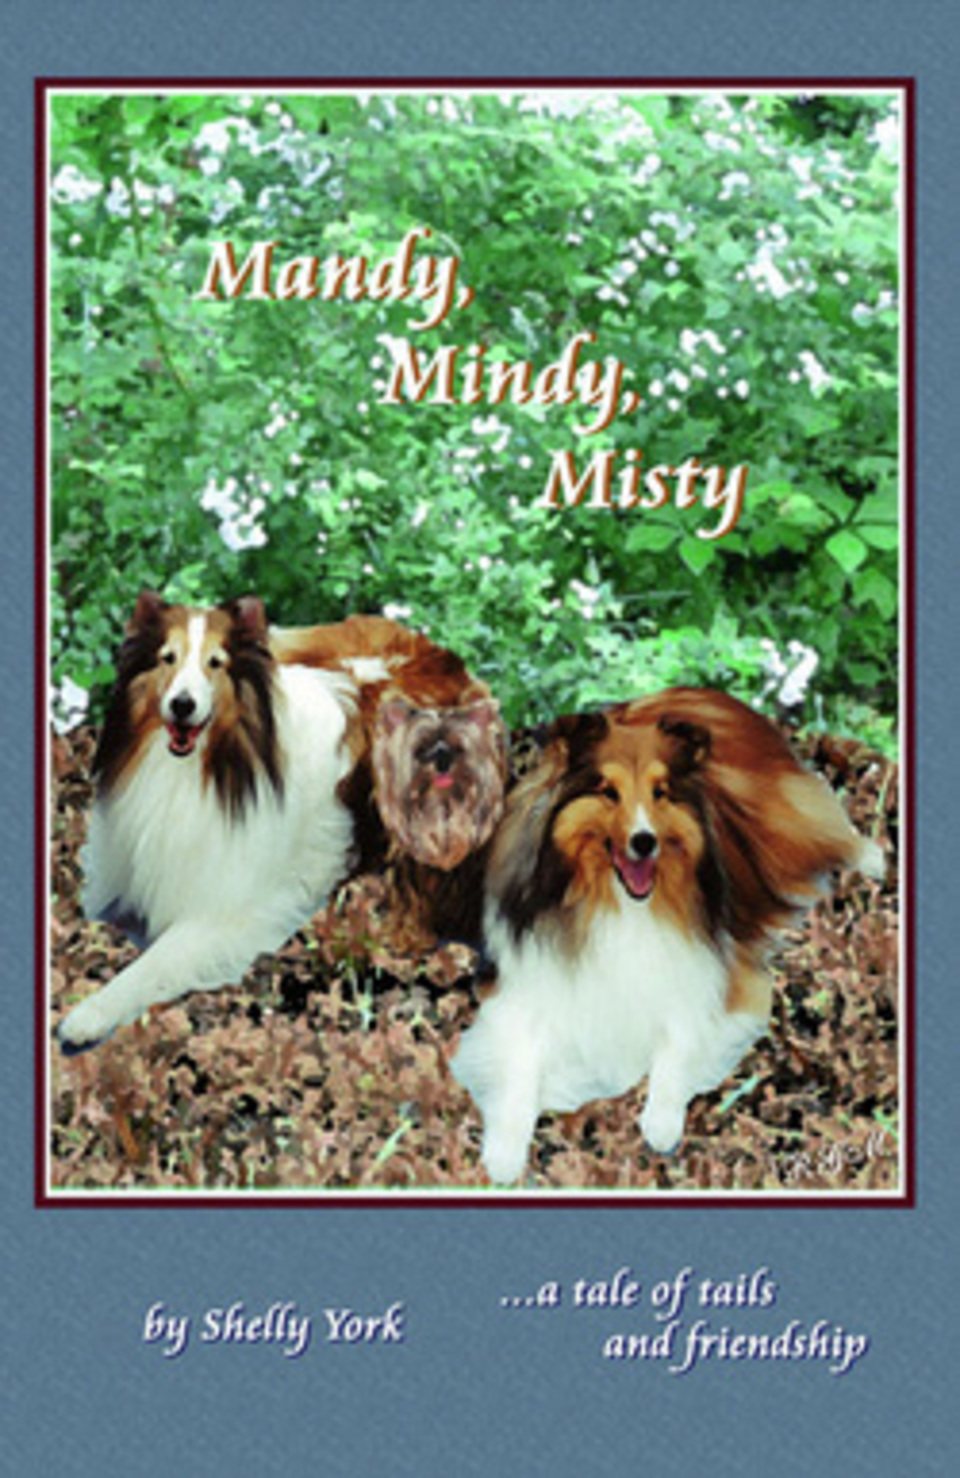 Mandy, Mindy, Misty